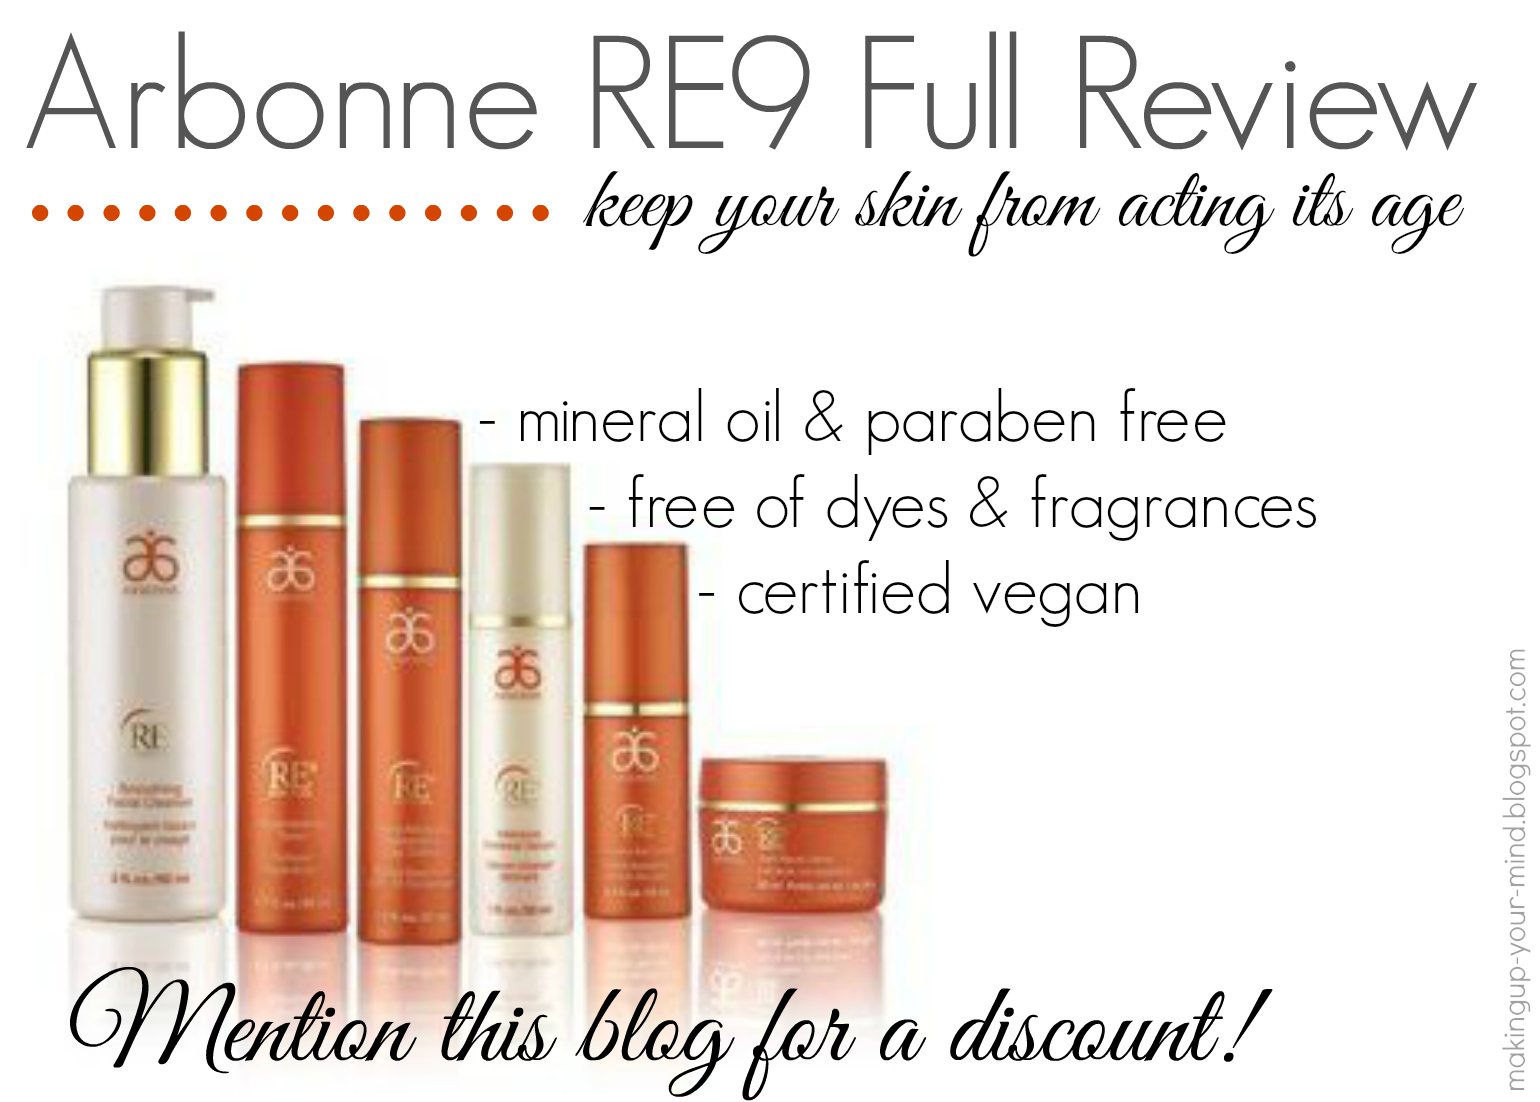 Makeup Your Mind Arbonne Re9 Full Review